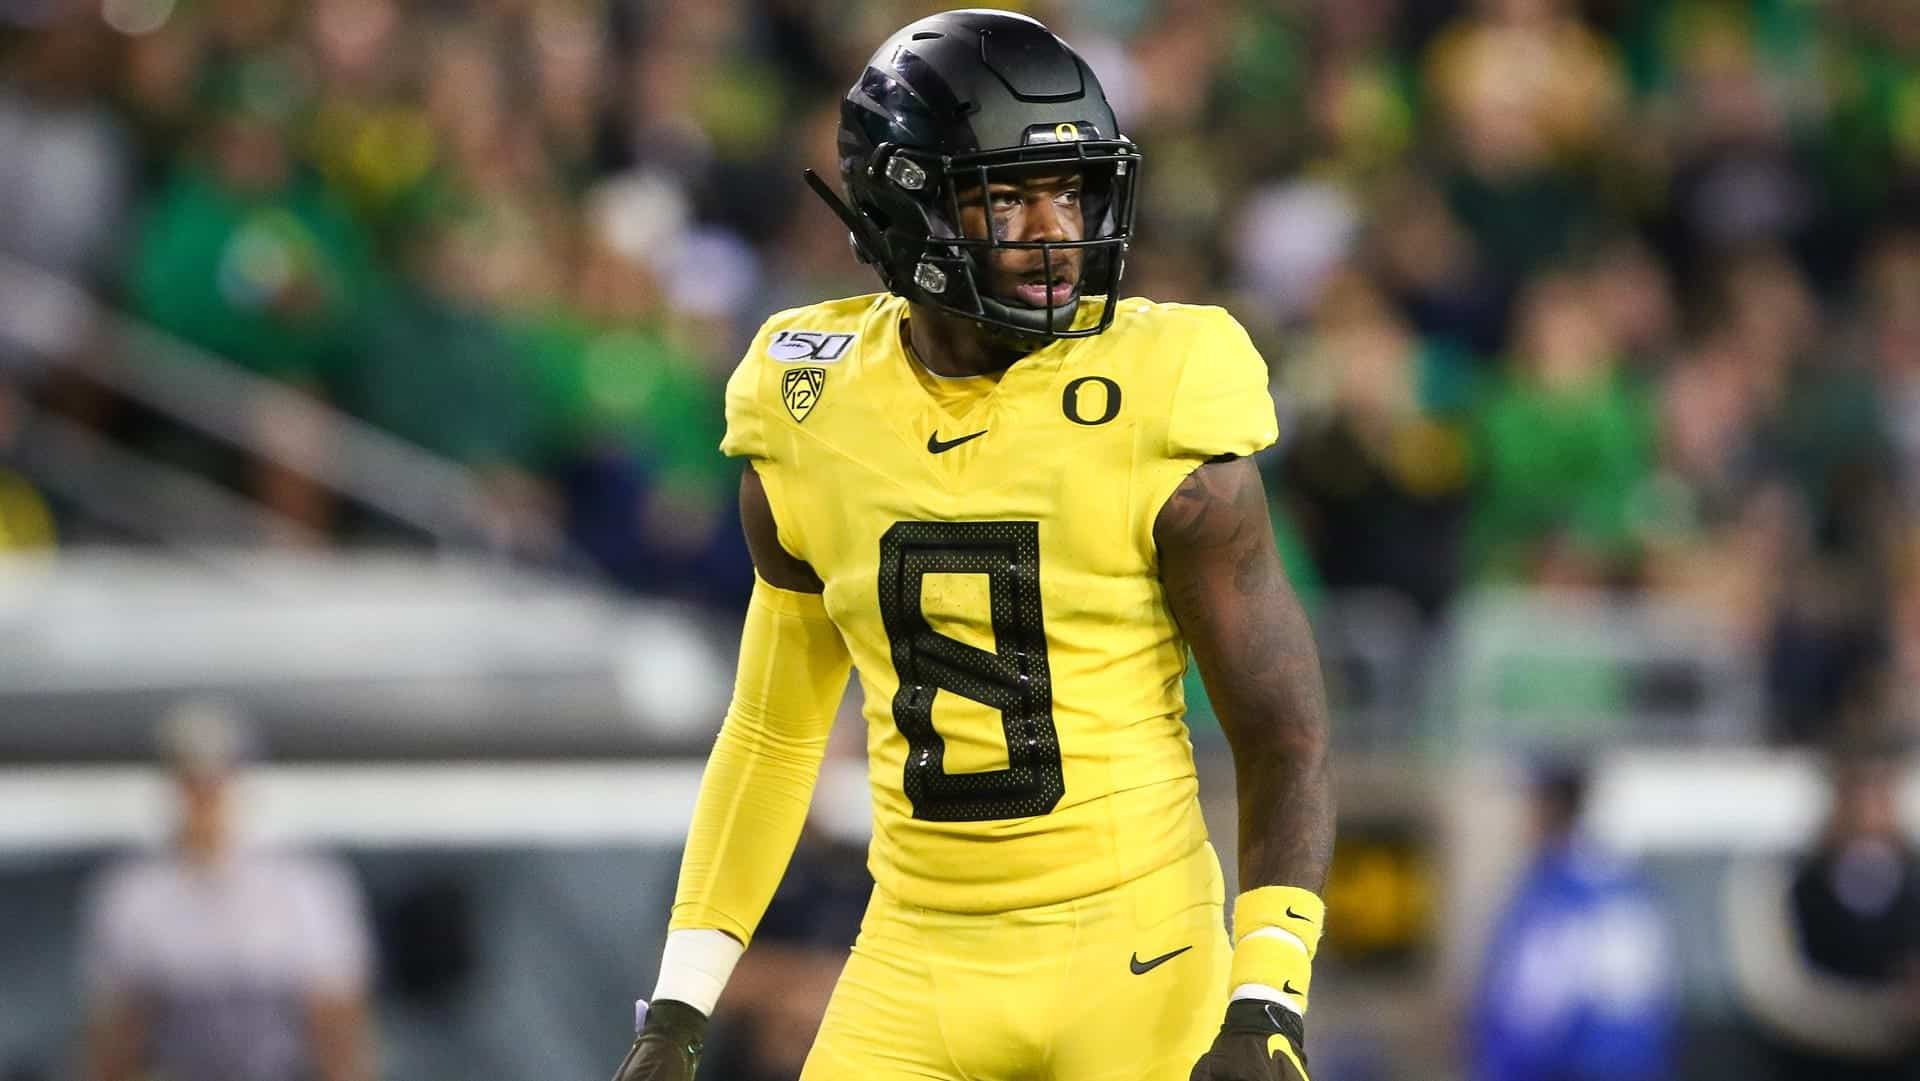 Analyzing the top safety prospects in the 2021 NFL Draft